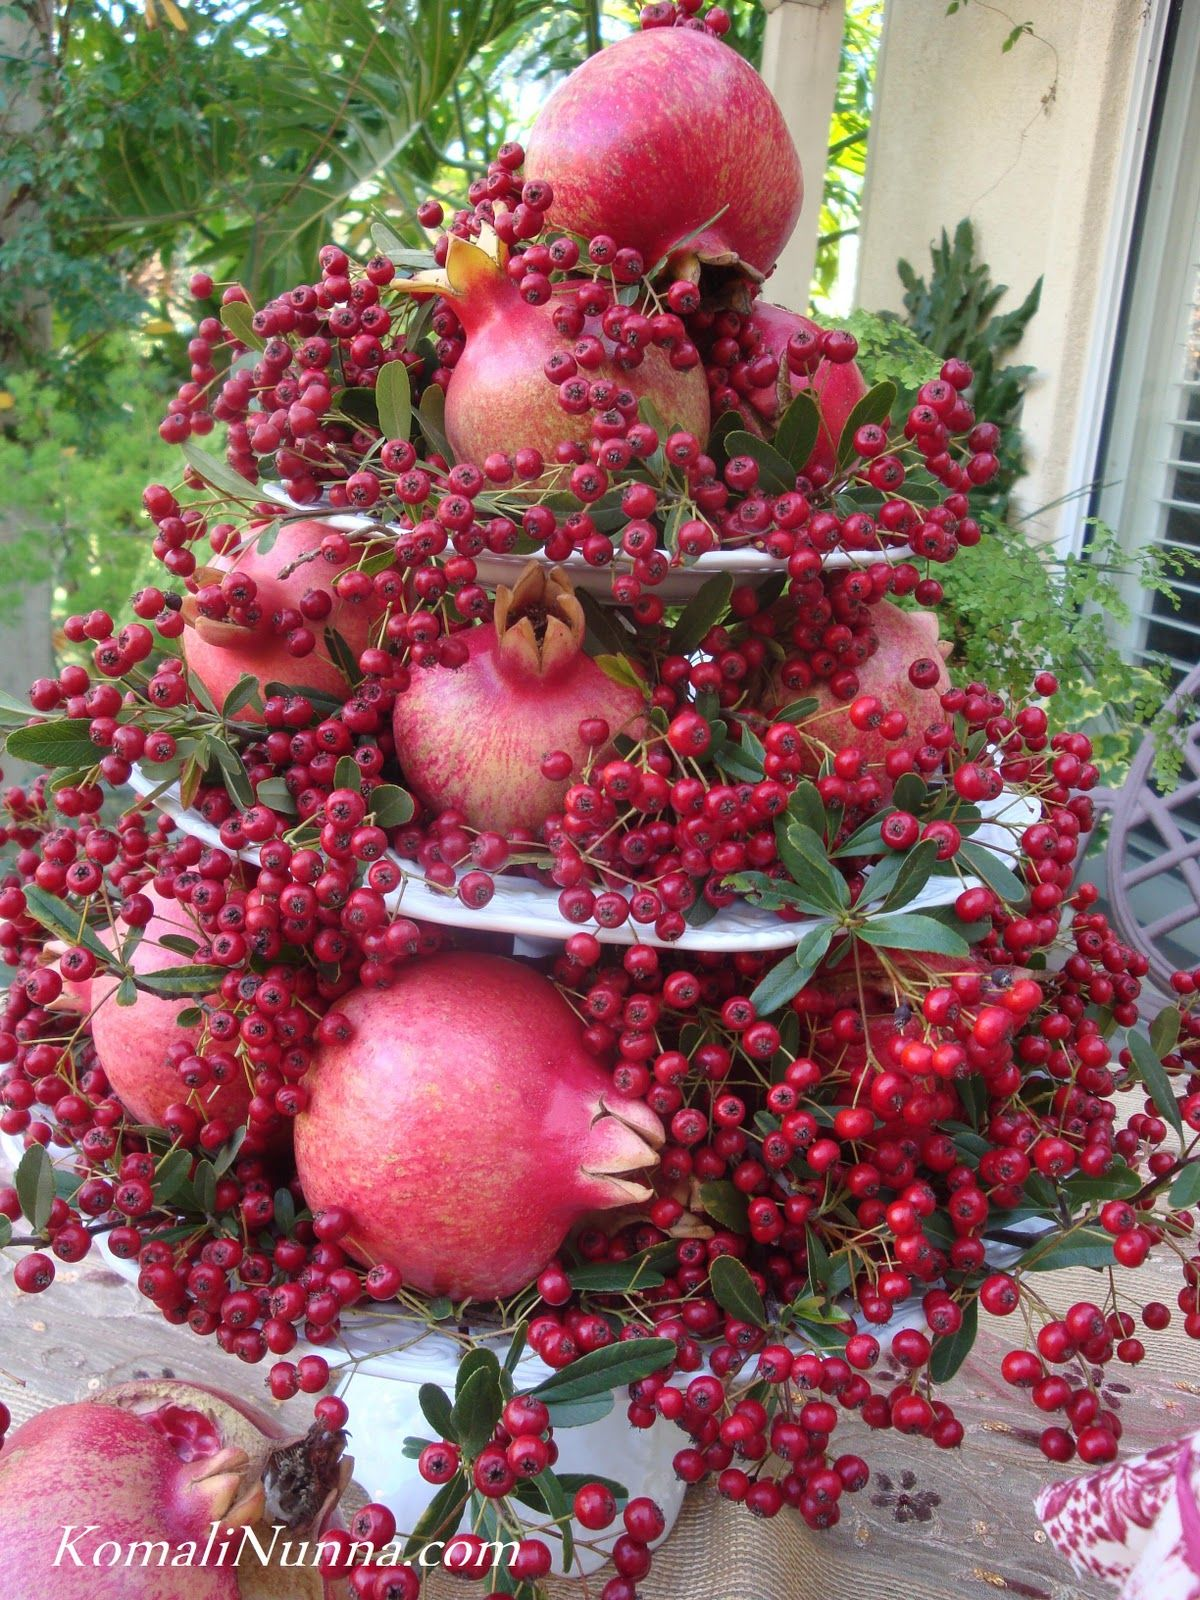 Christmas buffet table decoration ideas - Pomegranate In Flower Arangements Pomegranates And Berries From The Garden Make A Stunning Centerpiece Christmas Table Decorationschristmas Decorating